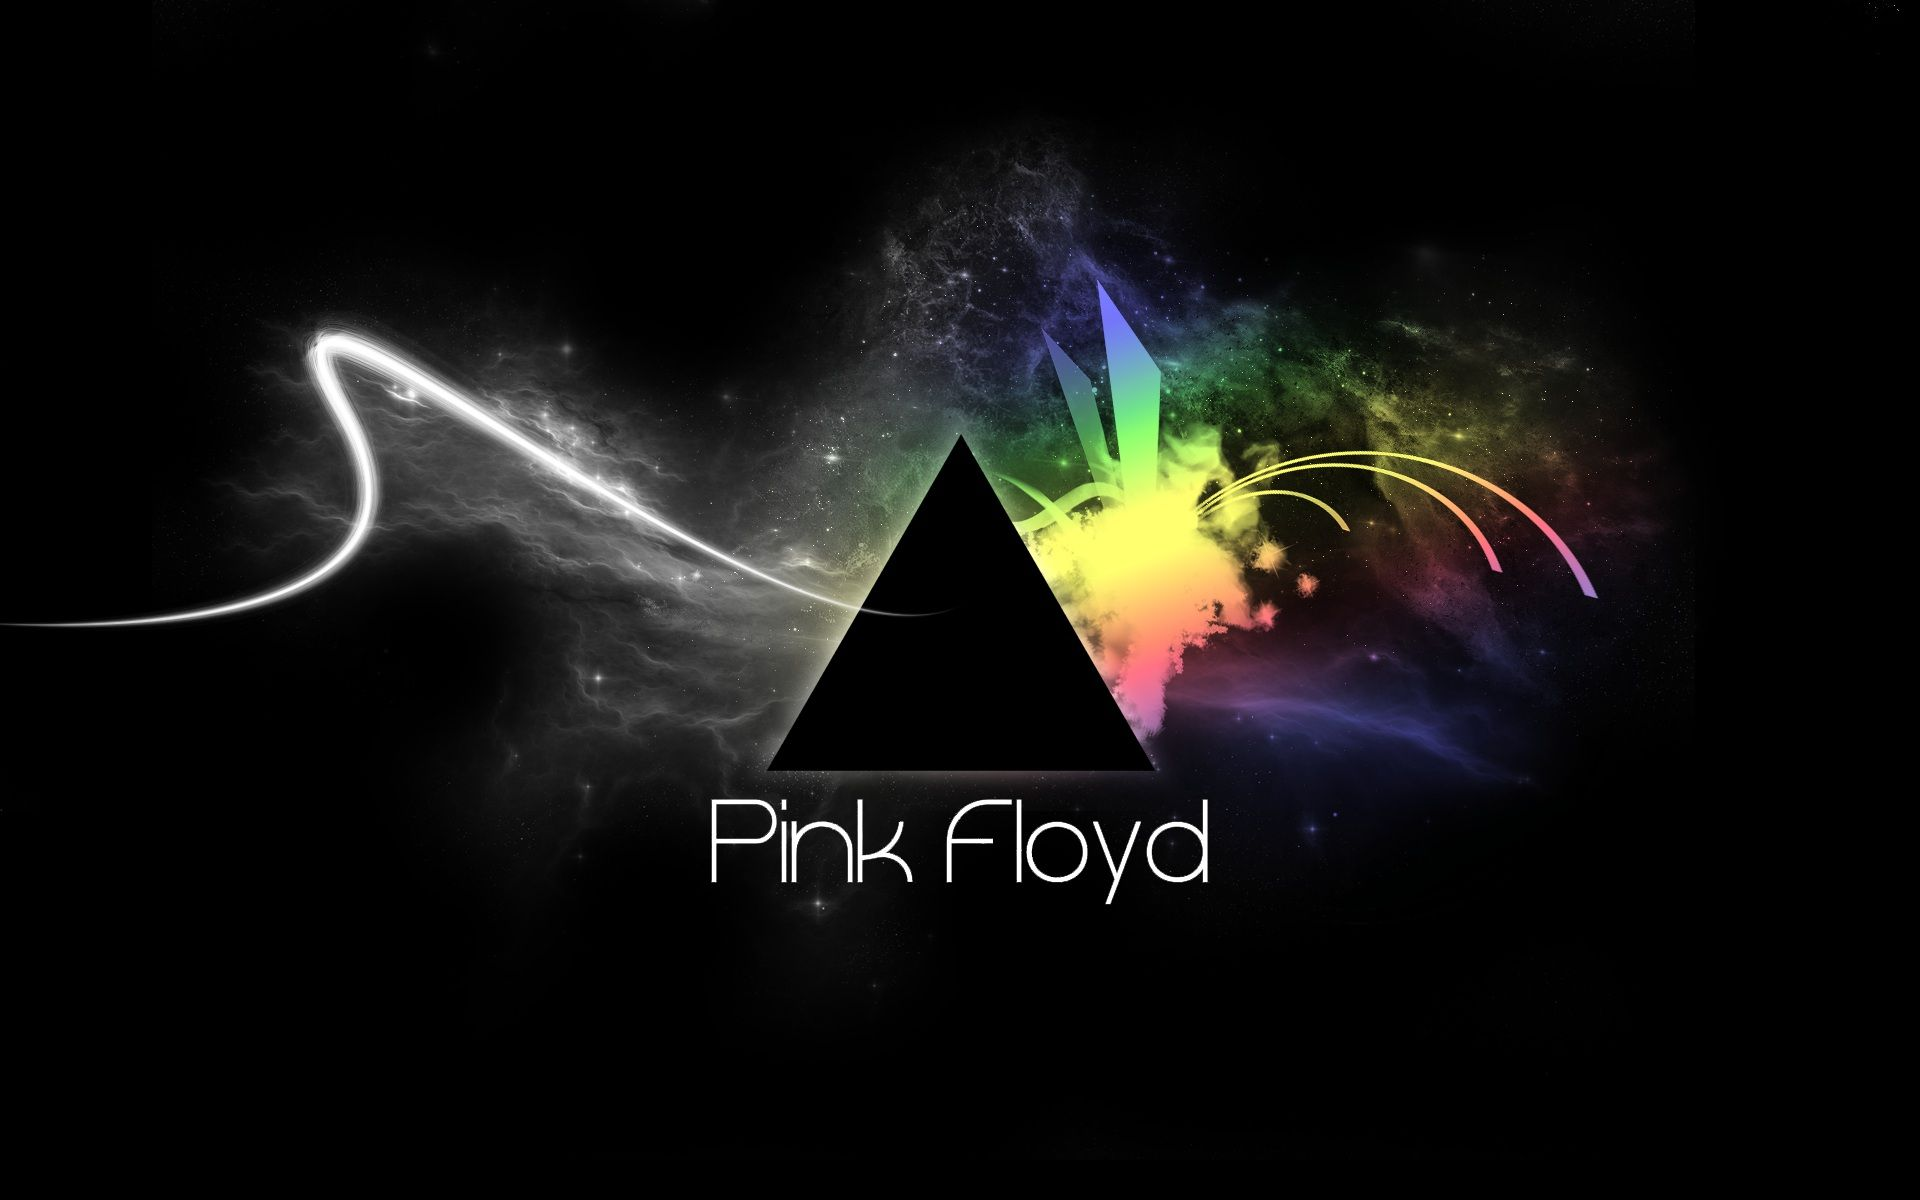 Pink Floyd Hd Wallpapers 1080p Wallpapersafari Pink Floyd